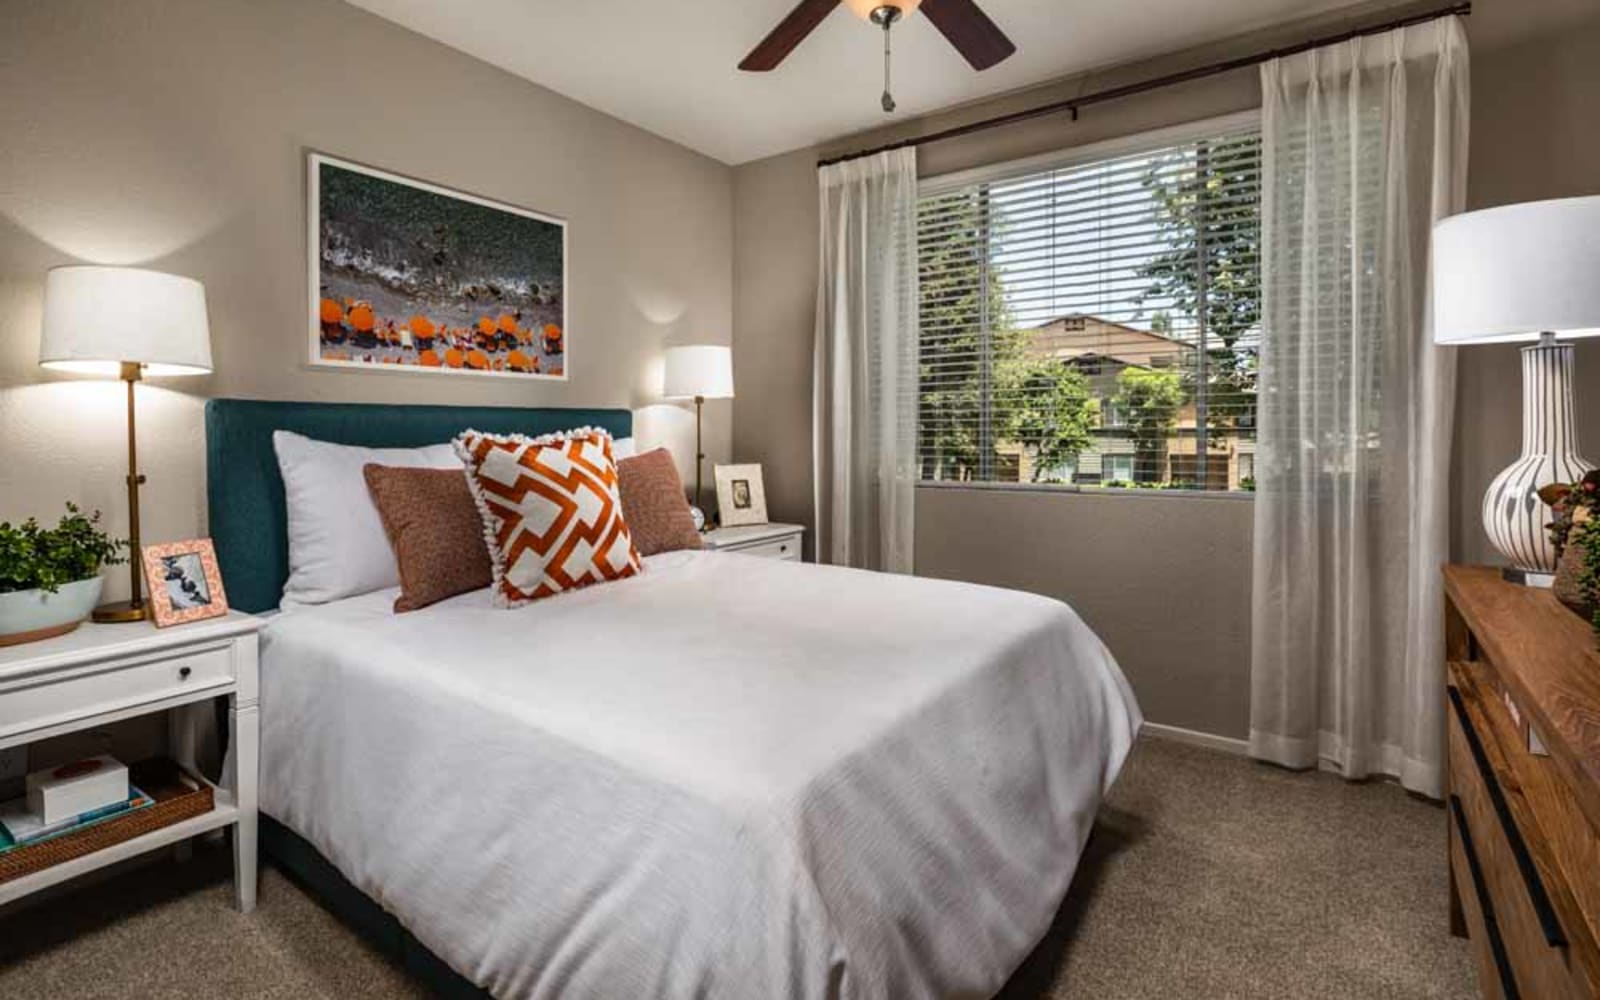 A carpeted apartment bedroom at Colonnade at Sycamore Highlands in Riverside, California